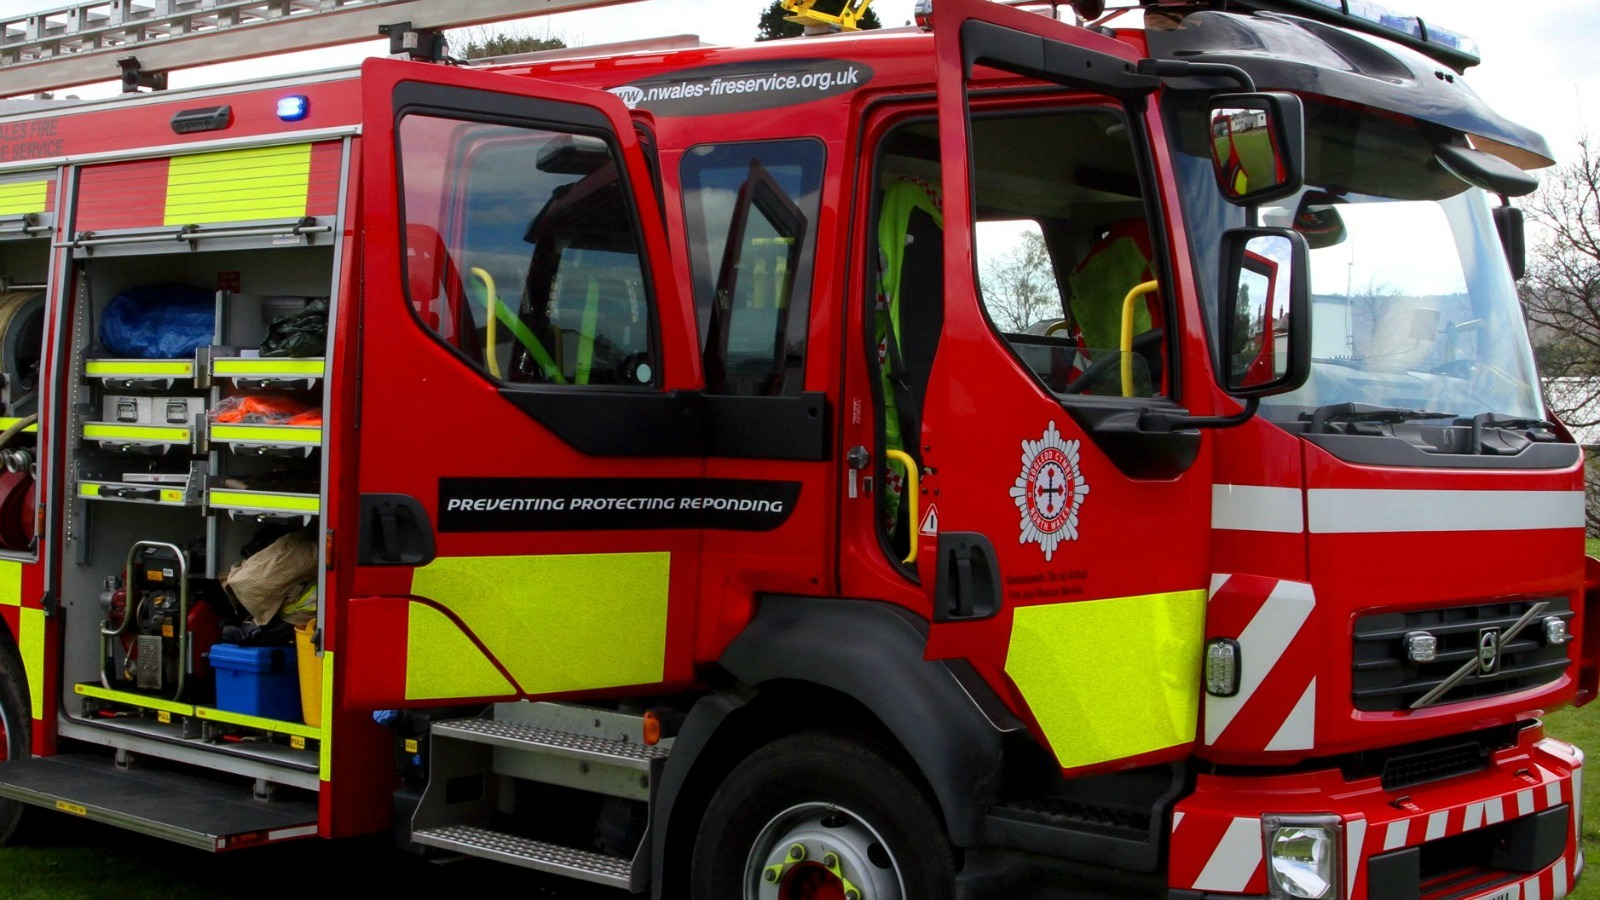 North Wales Fire and Rescue faces a £1.9m funding shortfall